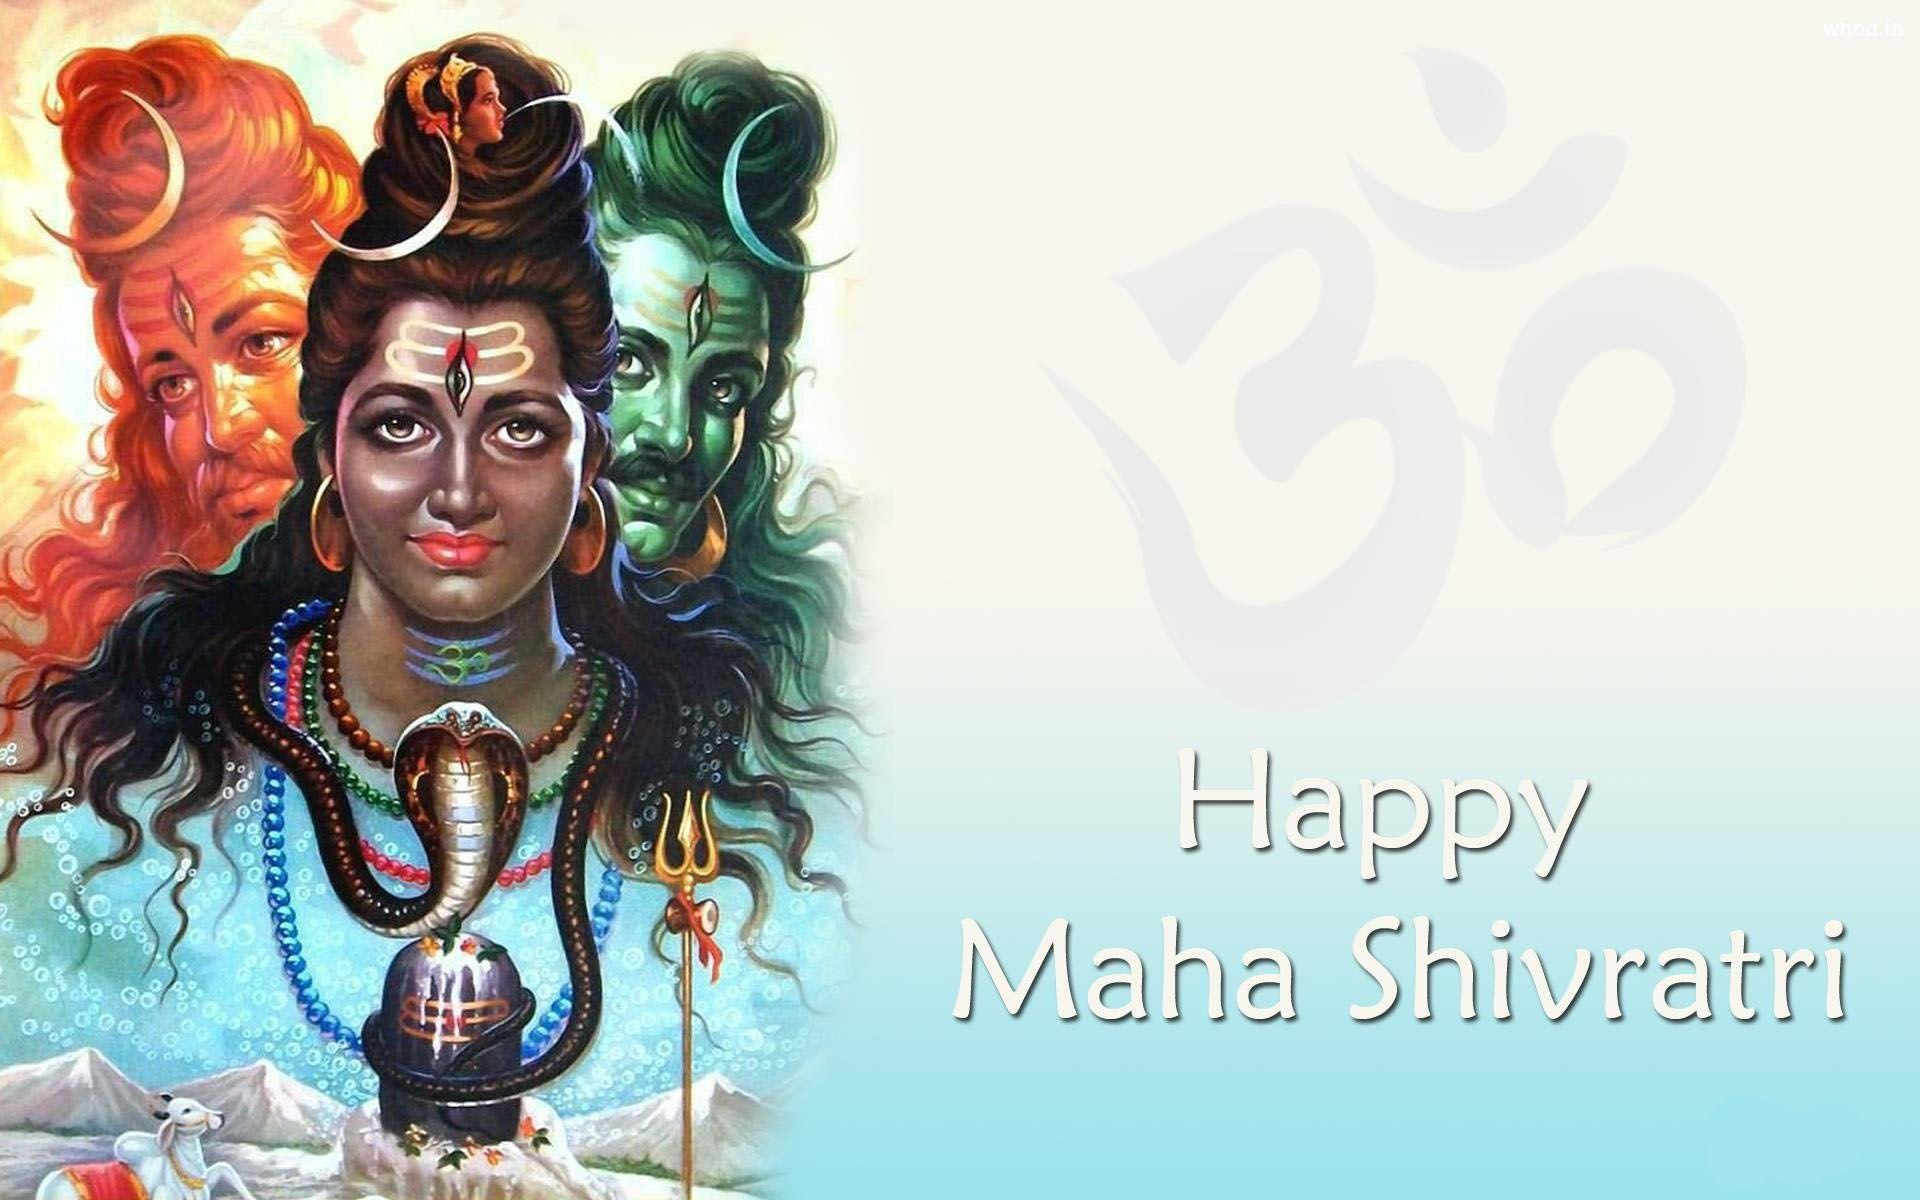 Quotes Happy Maha Shivratri Wishes Wallpapers \u2013 Latest ...